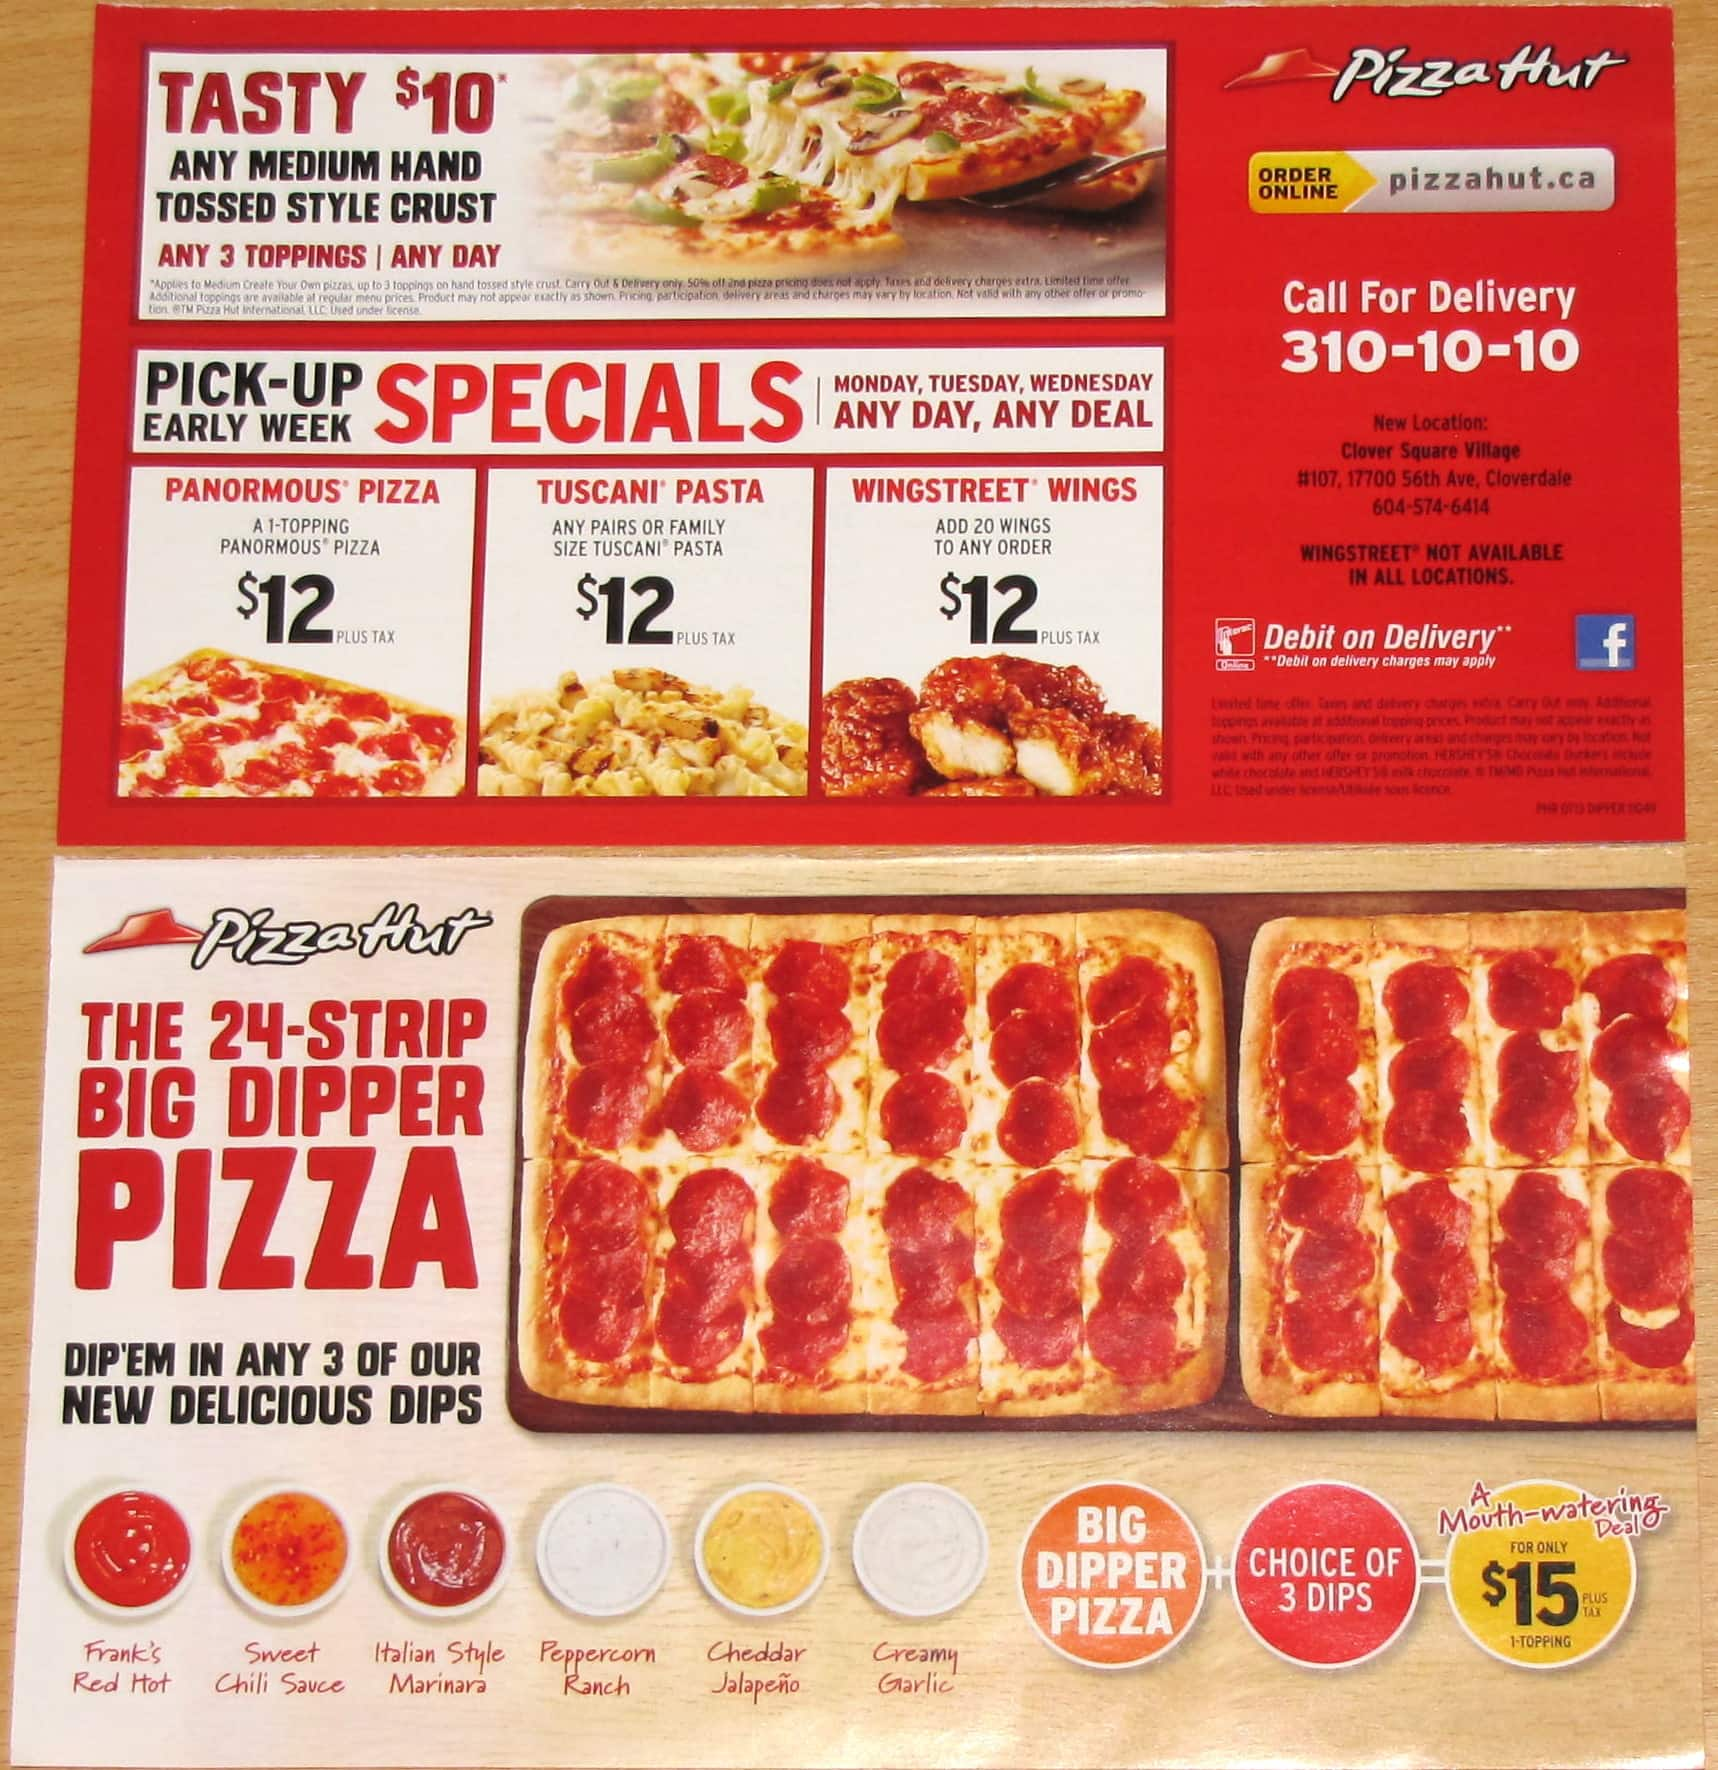 Pizza Hut was founded in in Wichita, Kansas, by brothers Dan and Frank Carney. They started a pizza restaurant because pizza restaurants were considered to be very rare at that time. Today, Pizza Hut prices are kept in line with rest of the pizza industry. They are currently owned by the same company that owns KFC and Taco Bell — Yum.